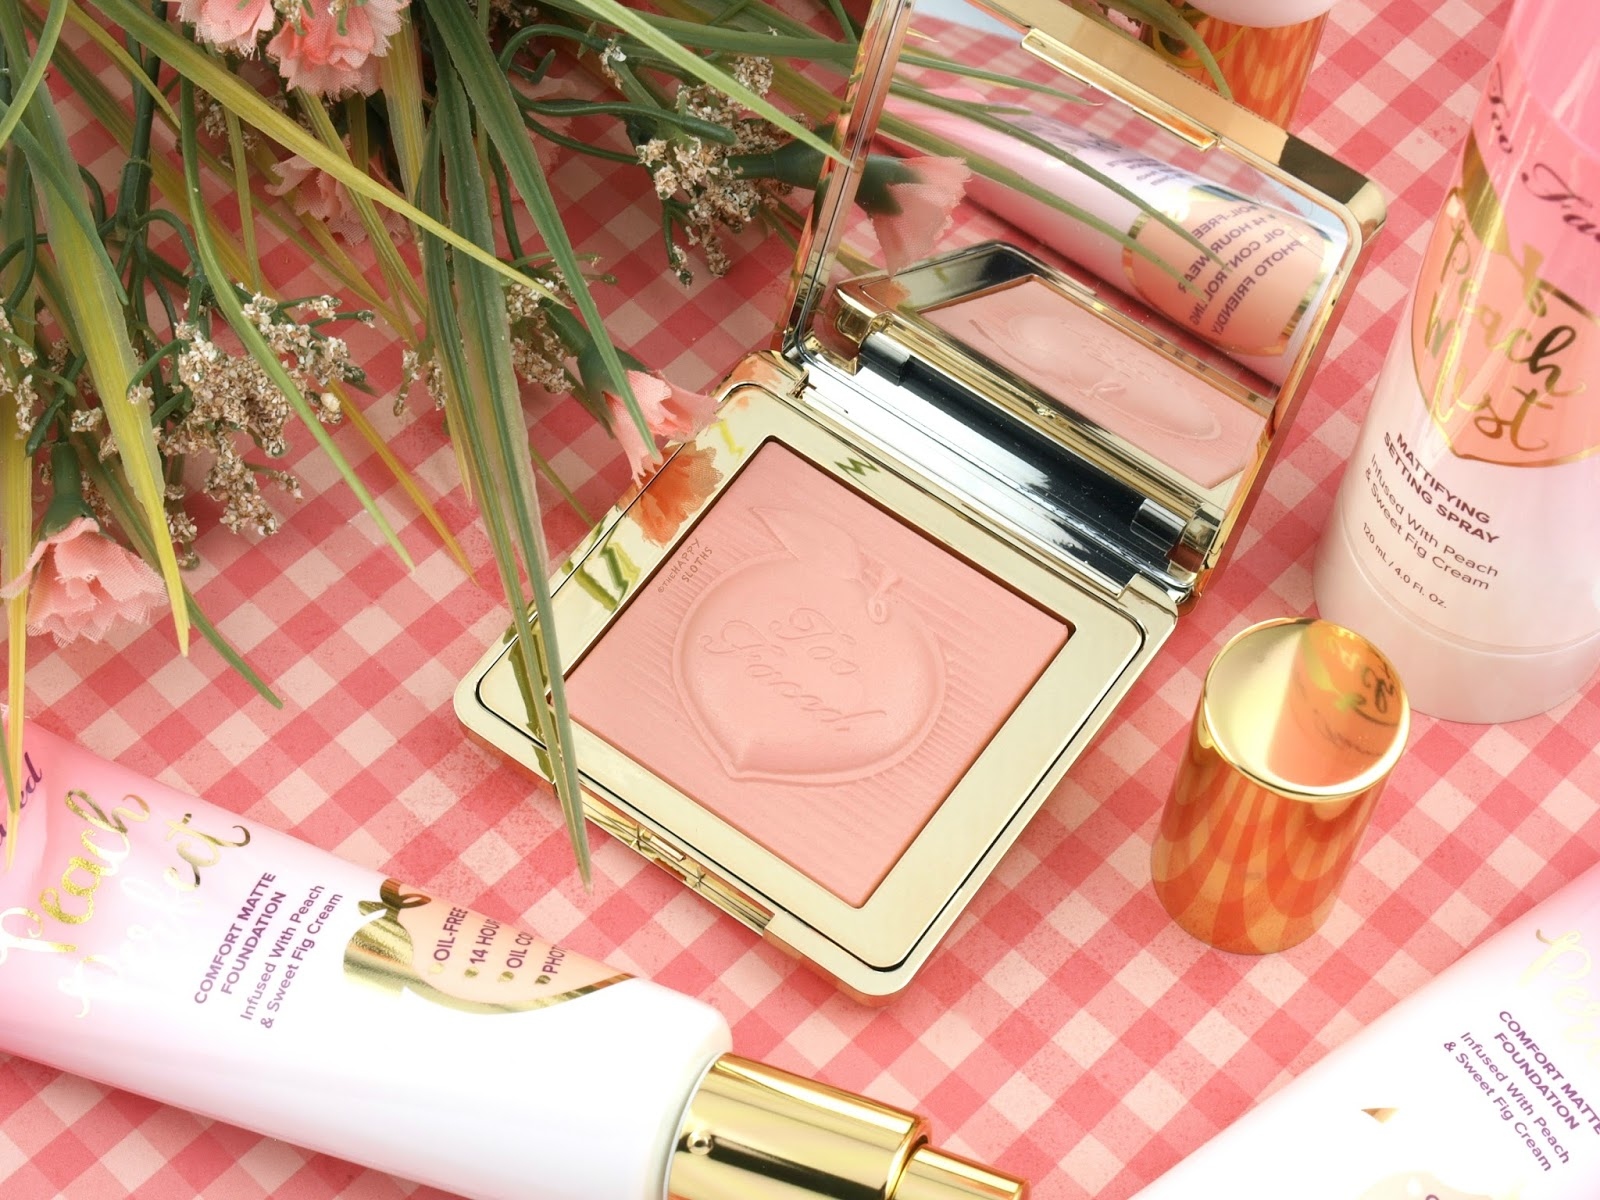 Too Faced Peaches & Cream Collection   Peach Blur Translucent Smoothing Finishing Powder: Review